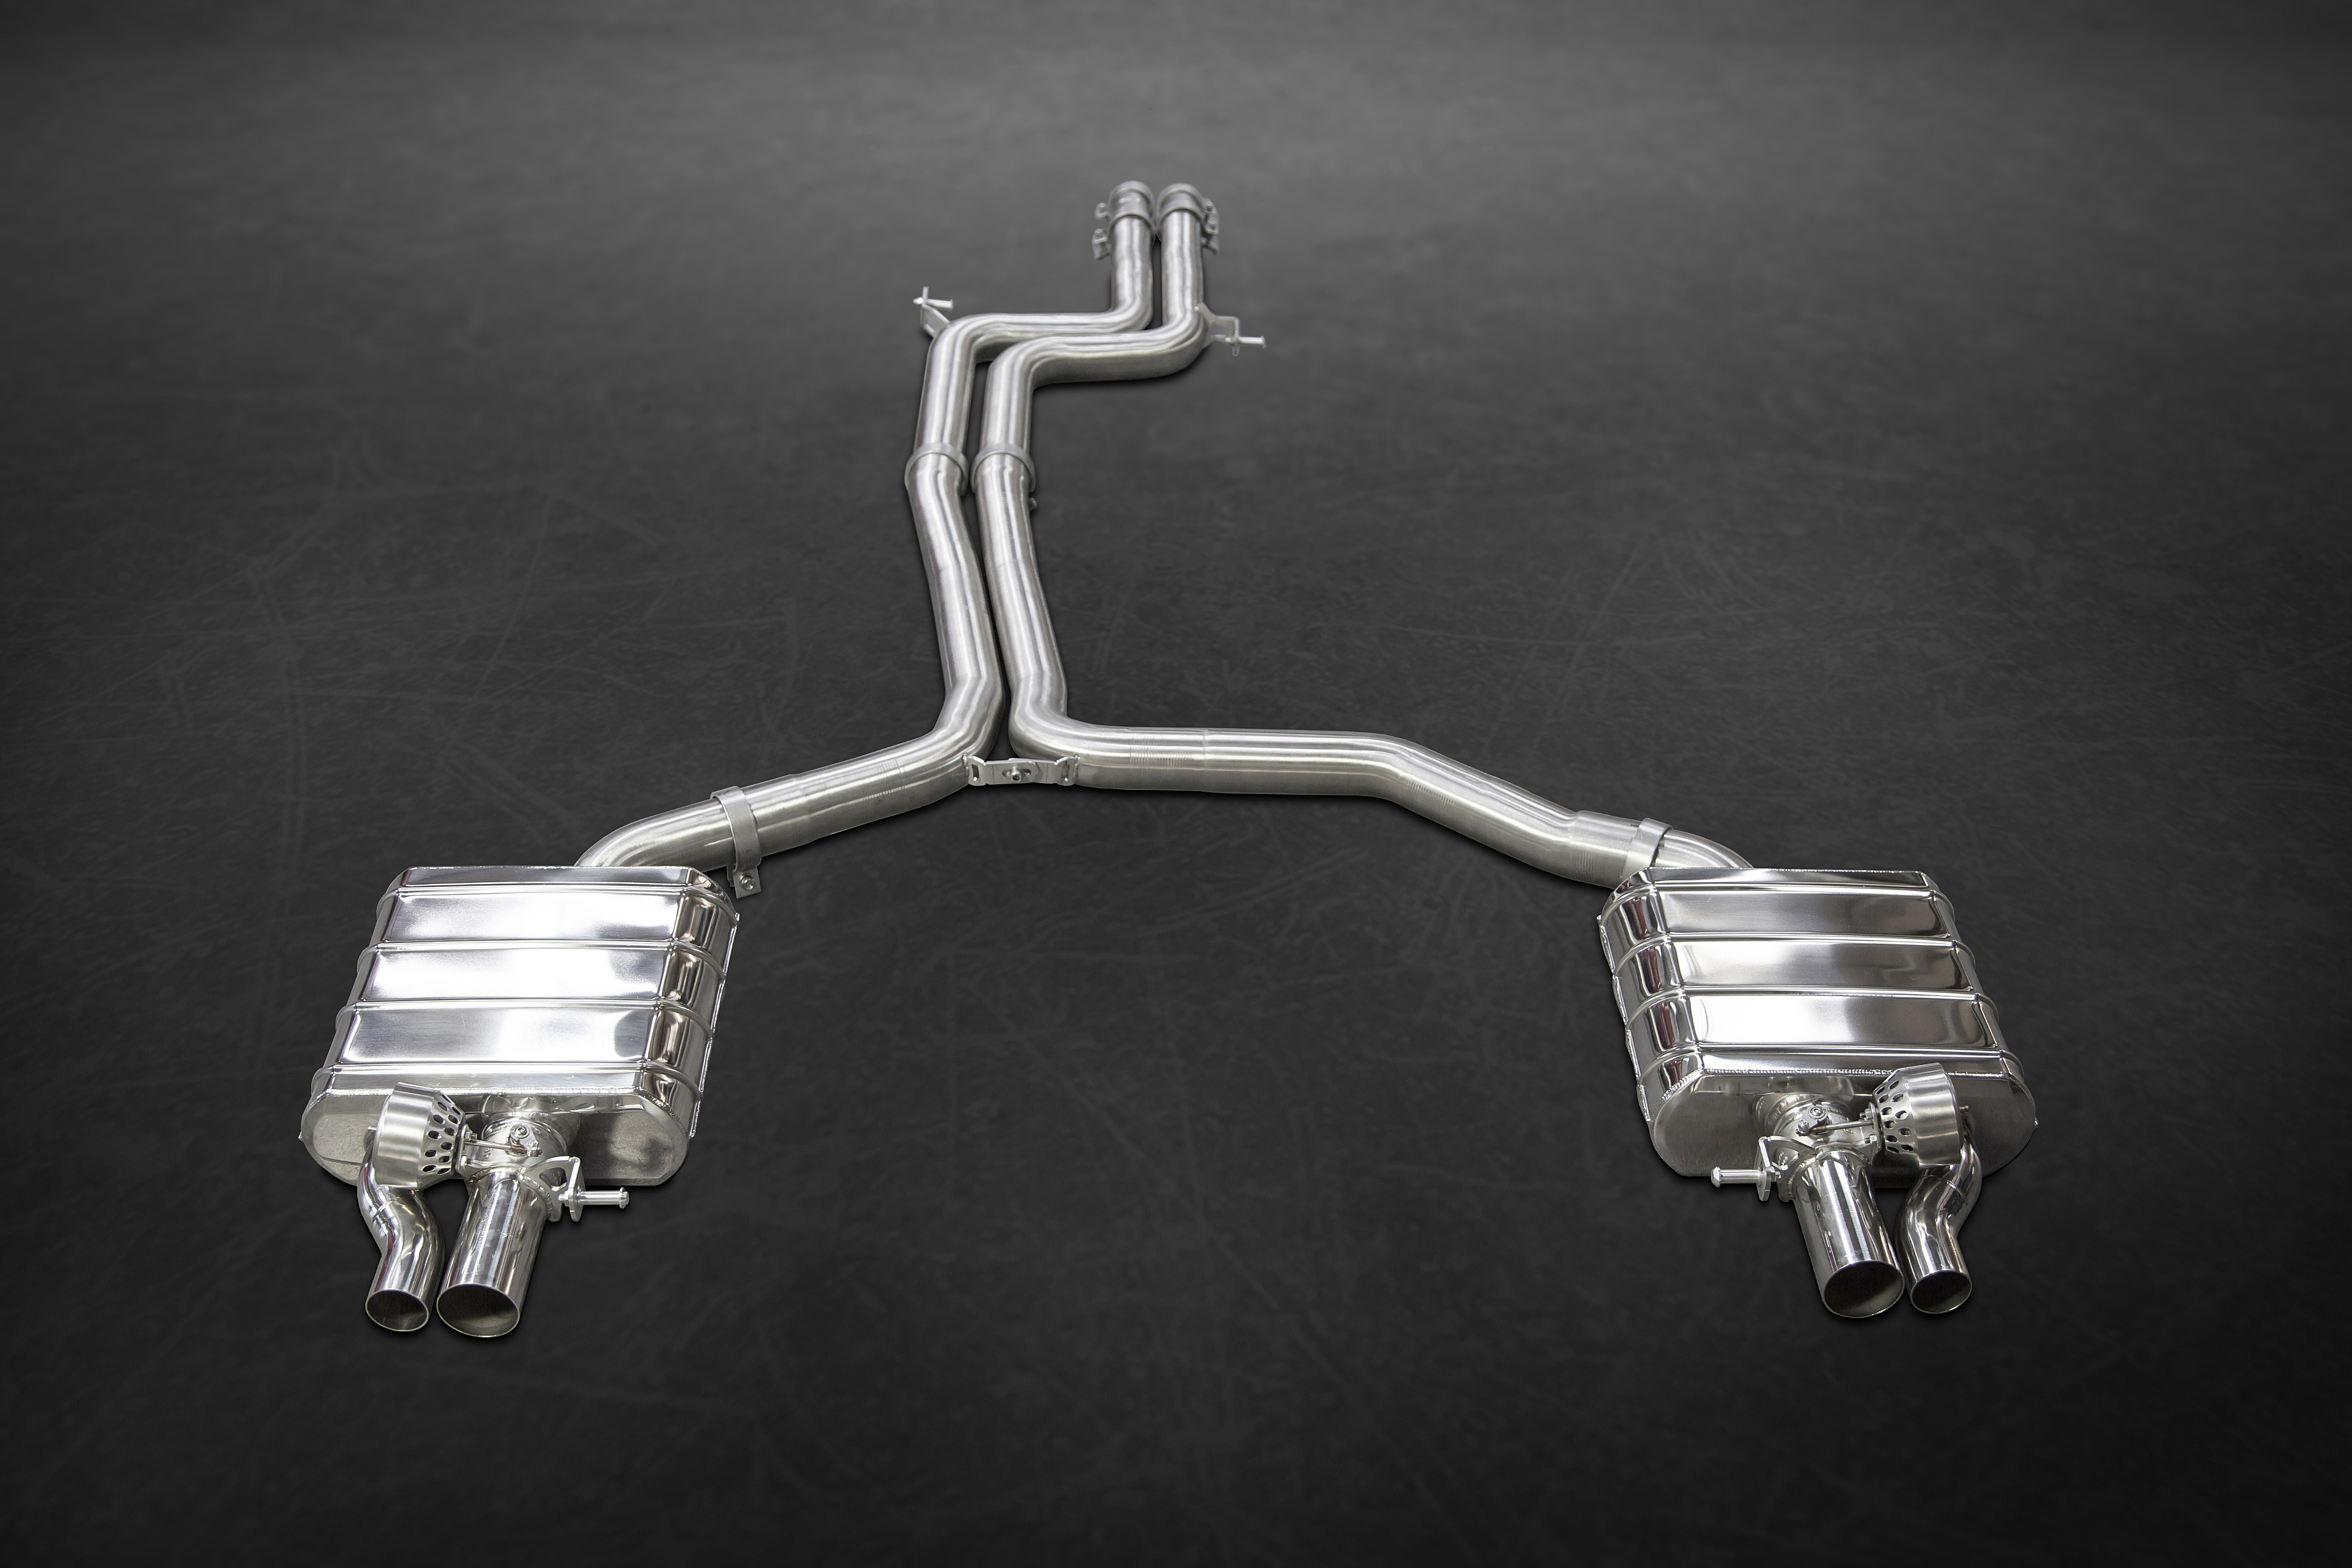 Capristo RS6/RS7 (C7) Valved Exhaust System (incl. remote)